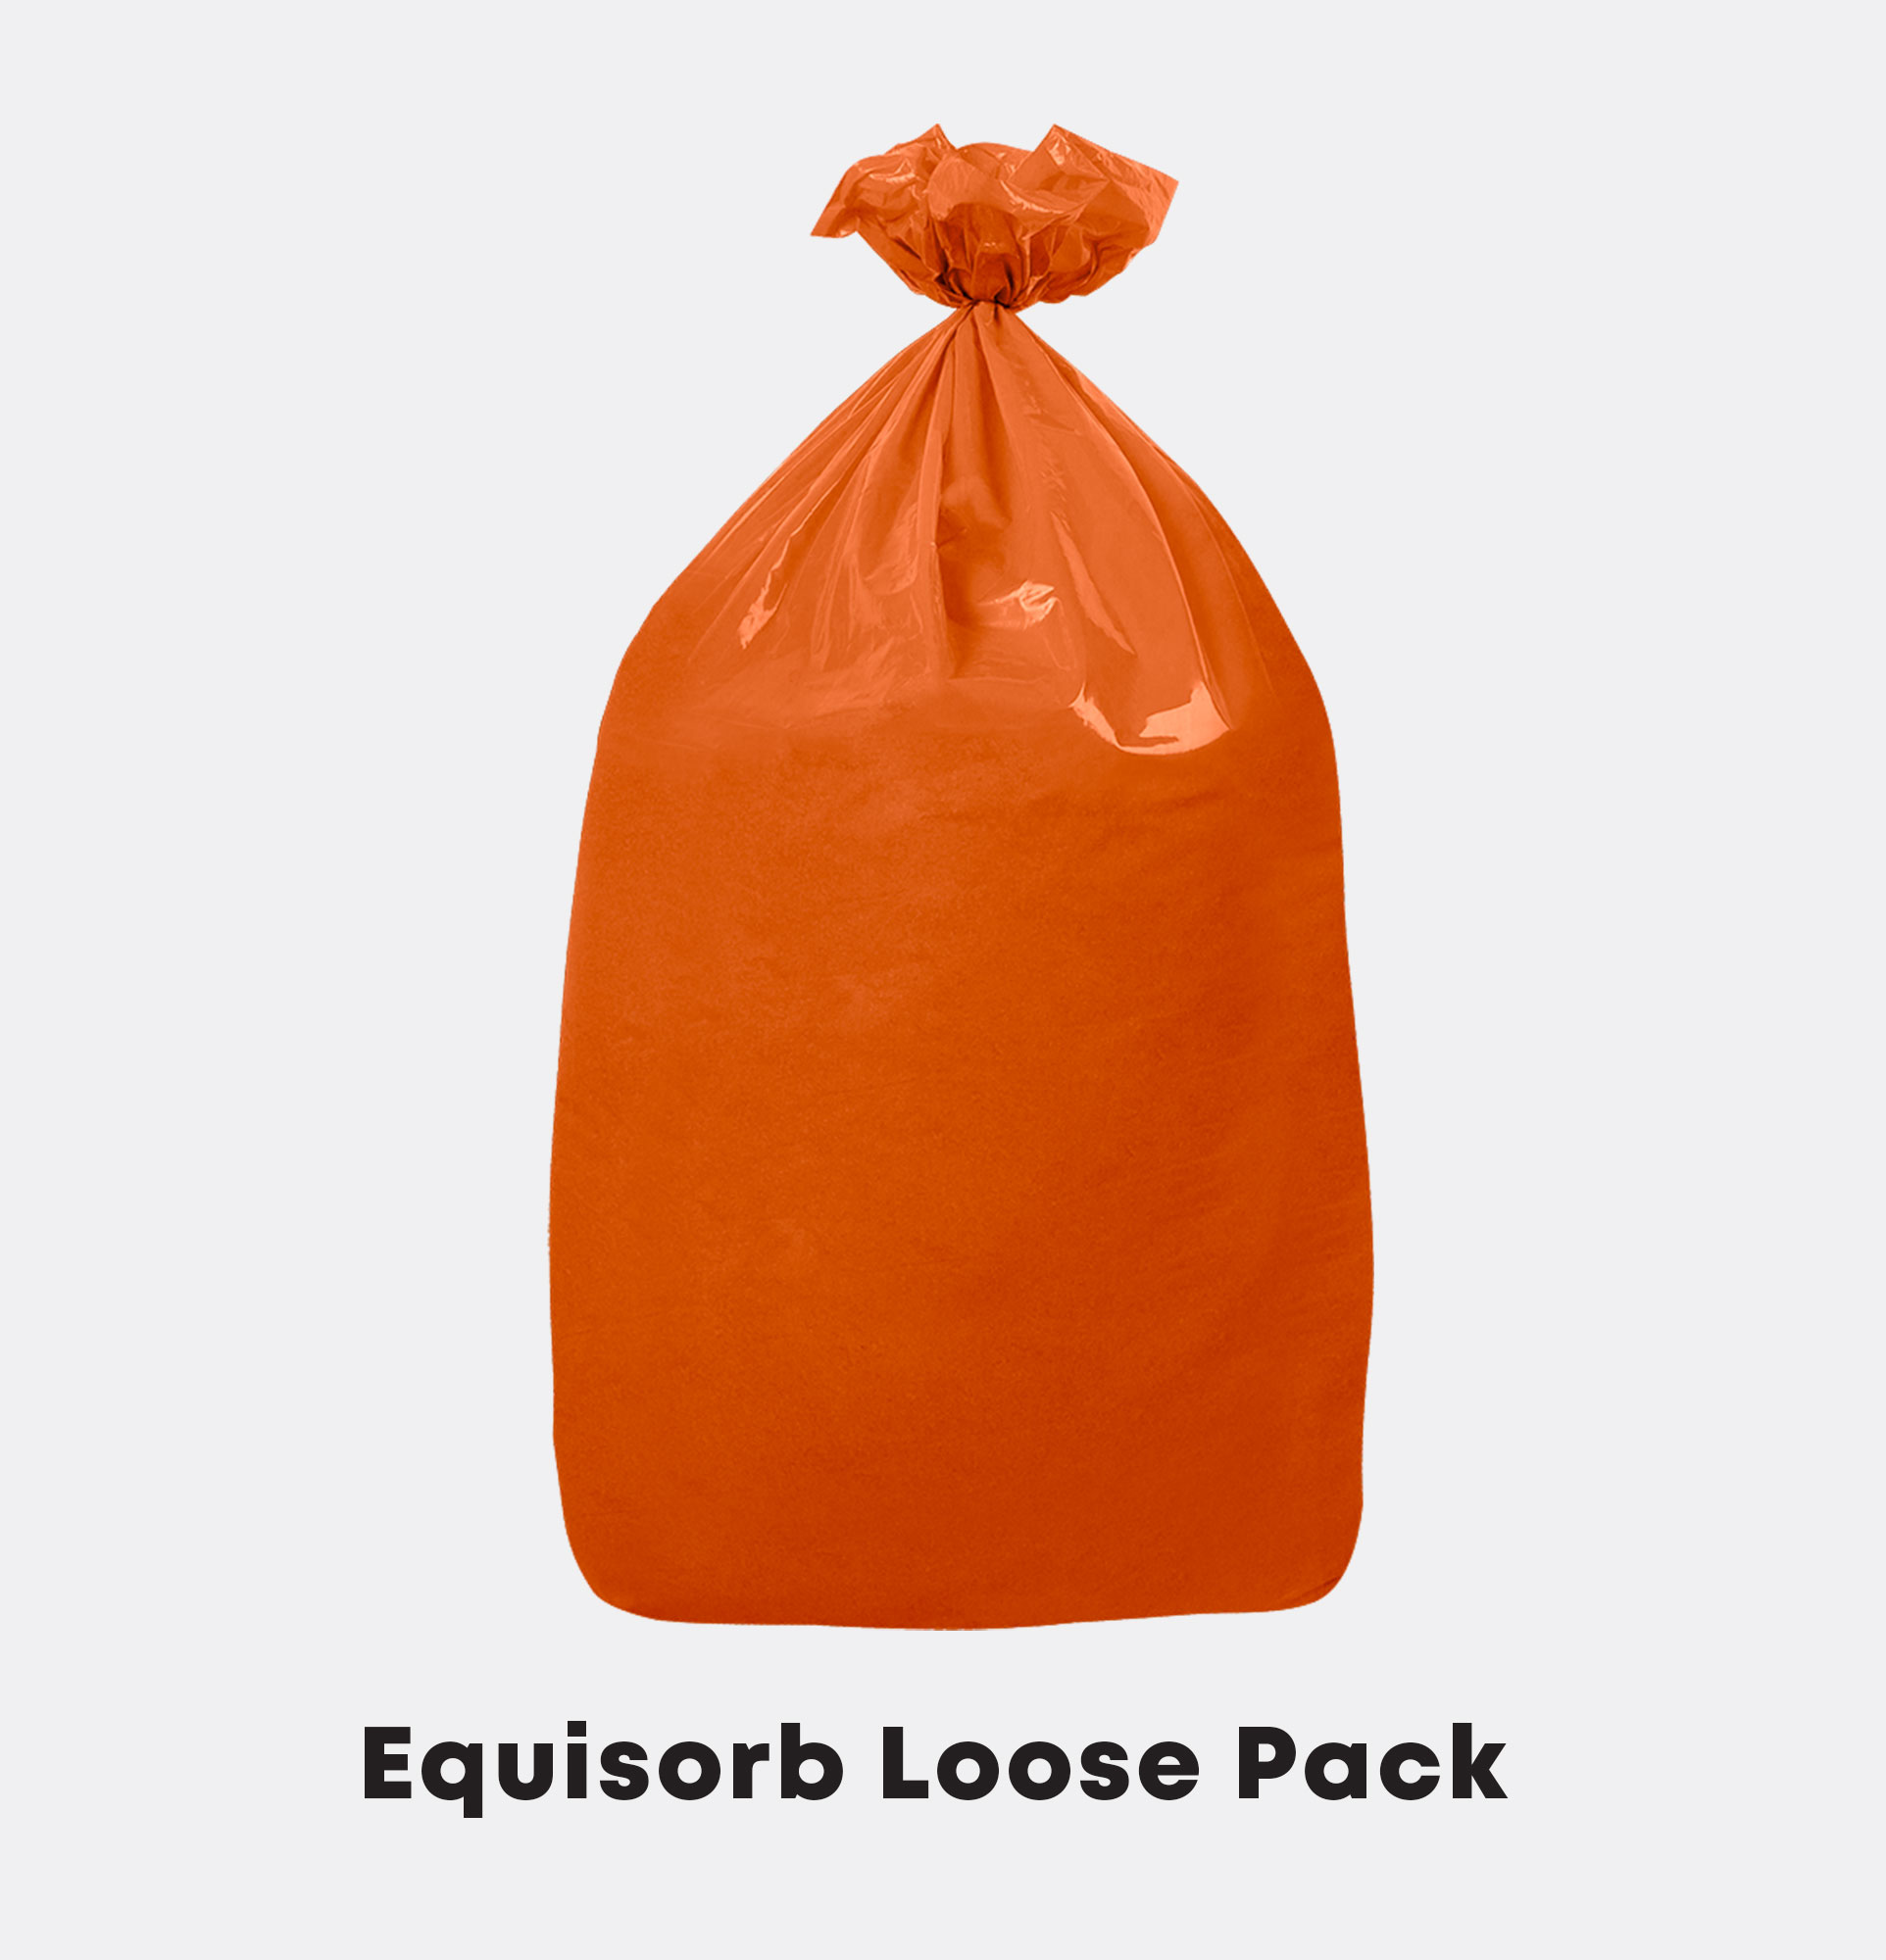 equisorb Loose Pack